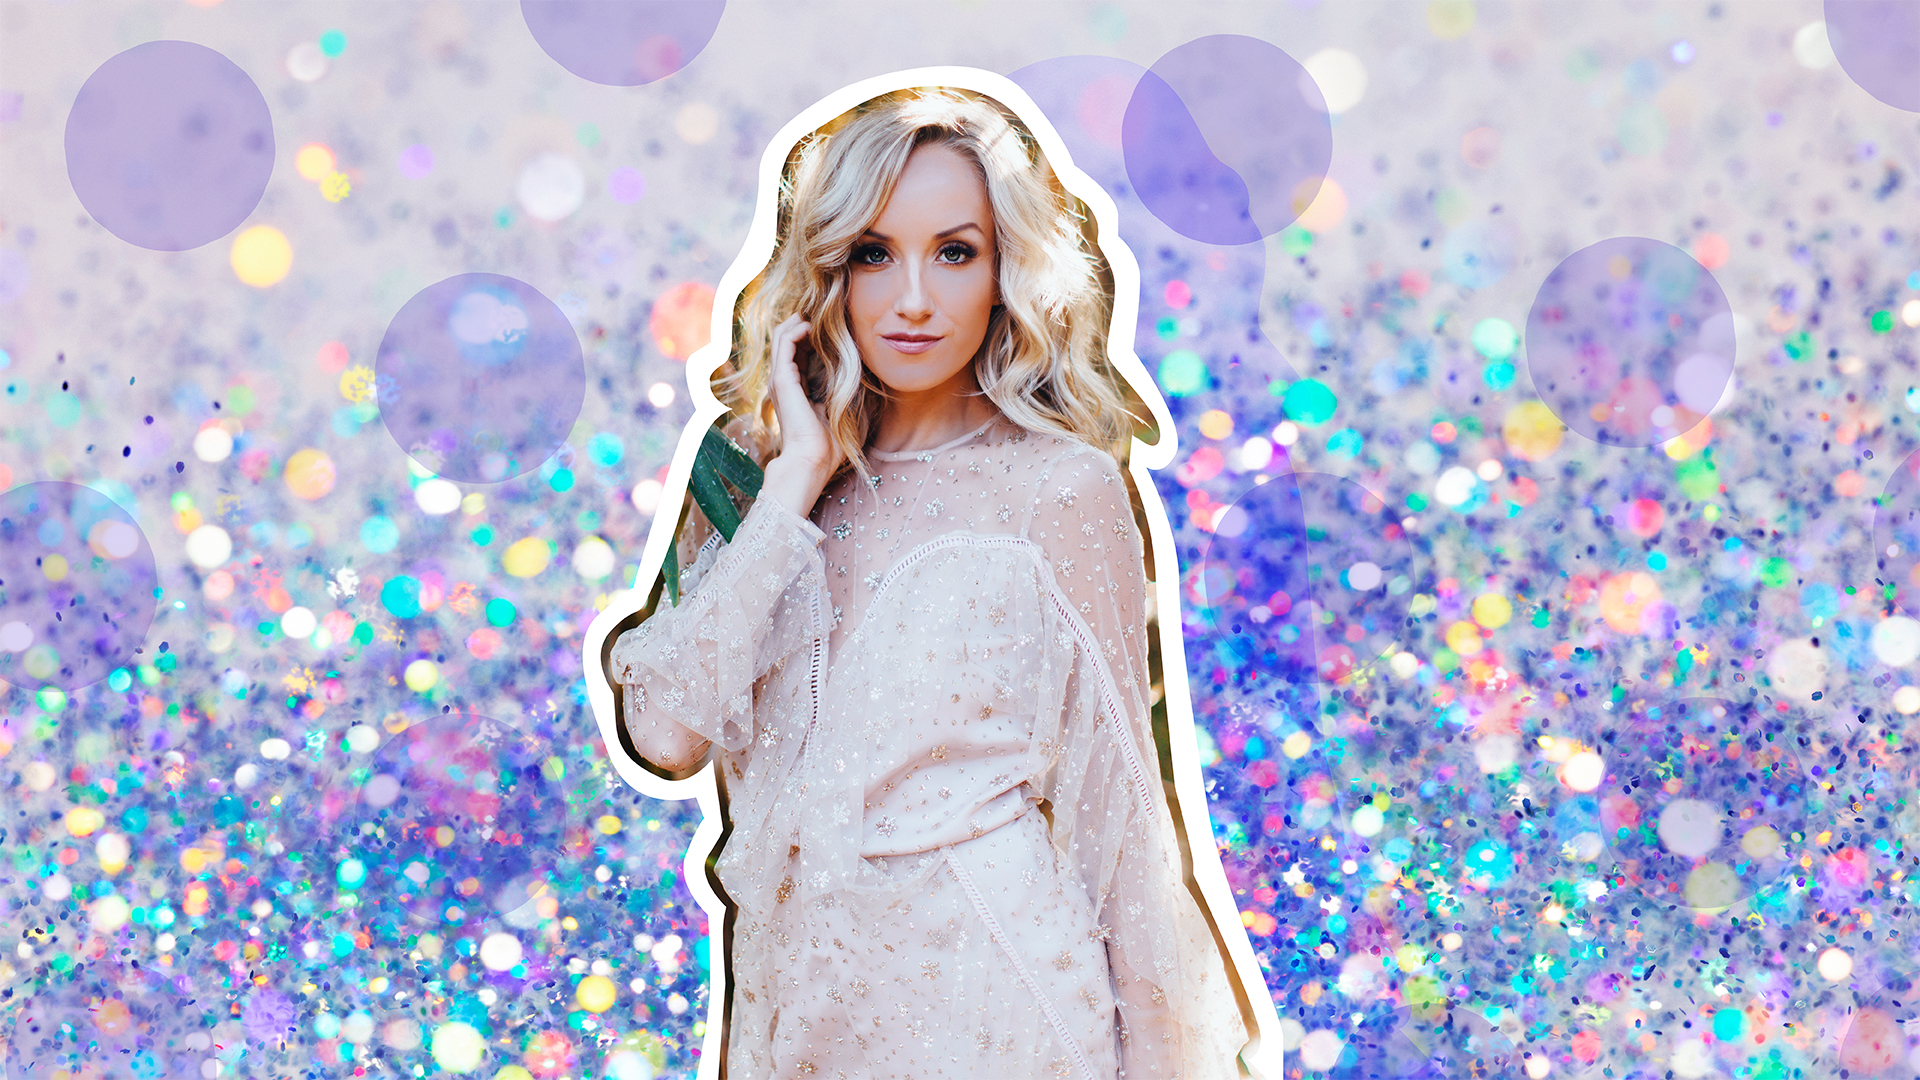 Nastia Liukin Opens Up About Body-Shaming and Being Seen as 'Bitchy'